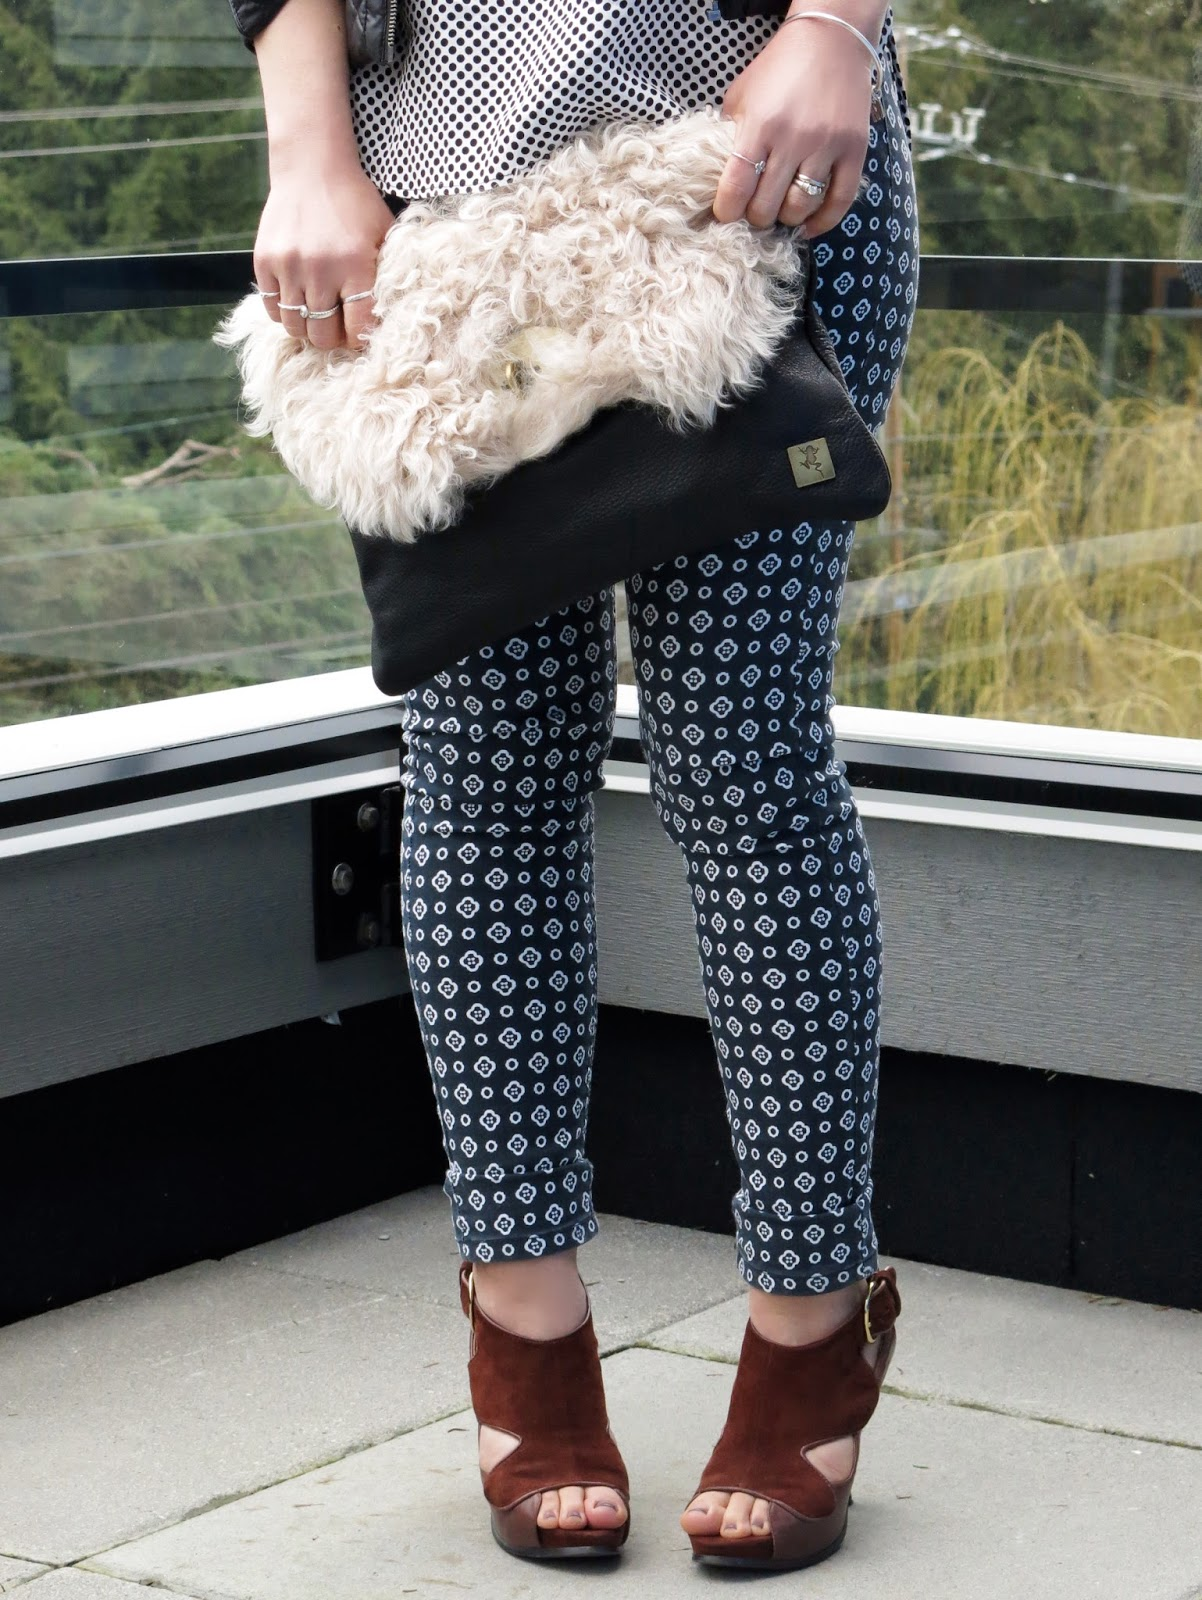 printed pants, polka-dotted blouse, and sherpa bag